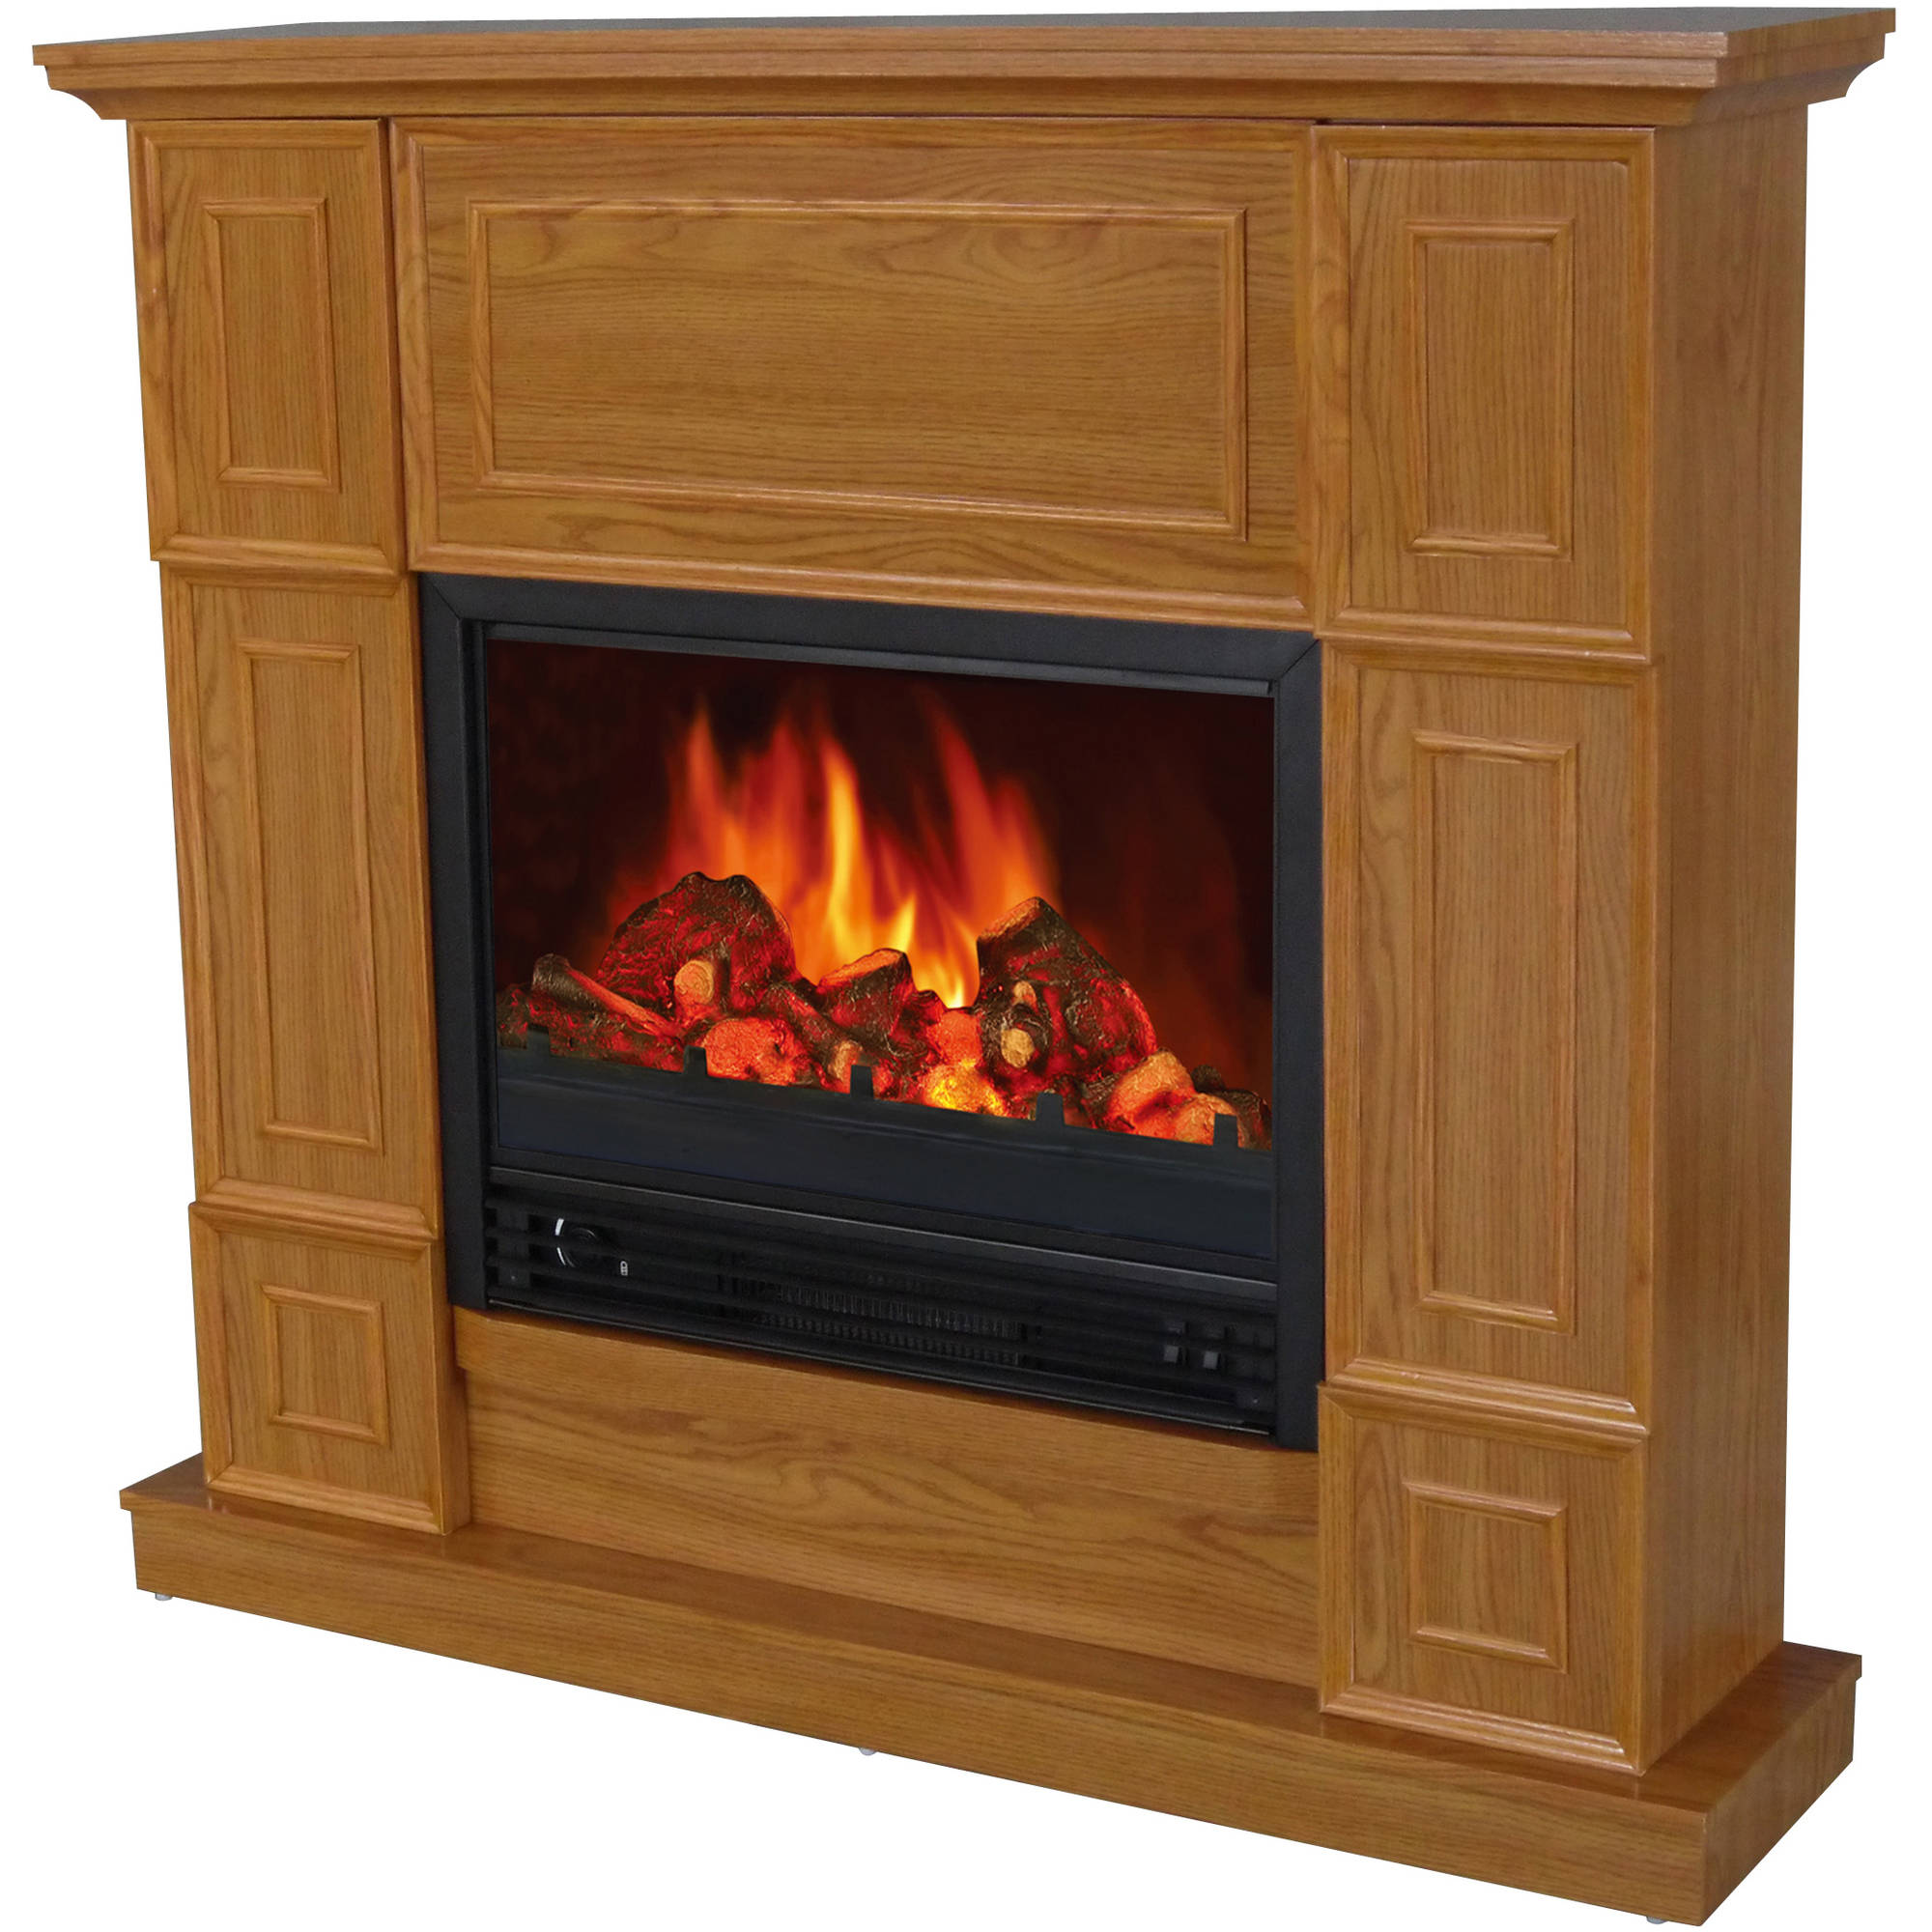 "Decor-Flame Electric Fireplace with 44"" Mantle by Electric Fireplaces"